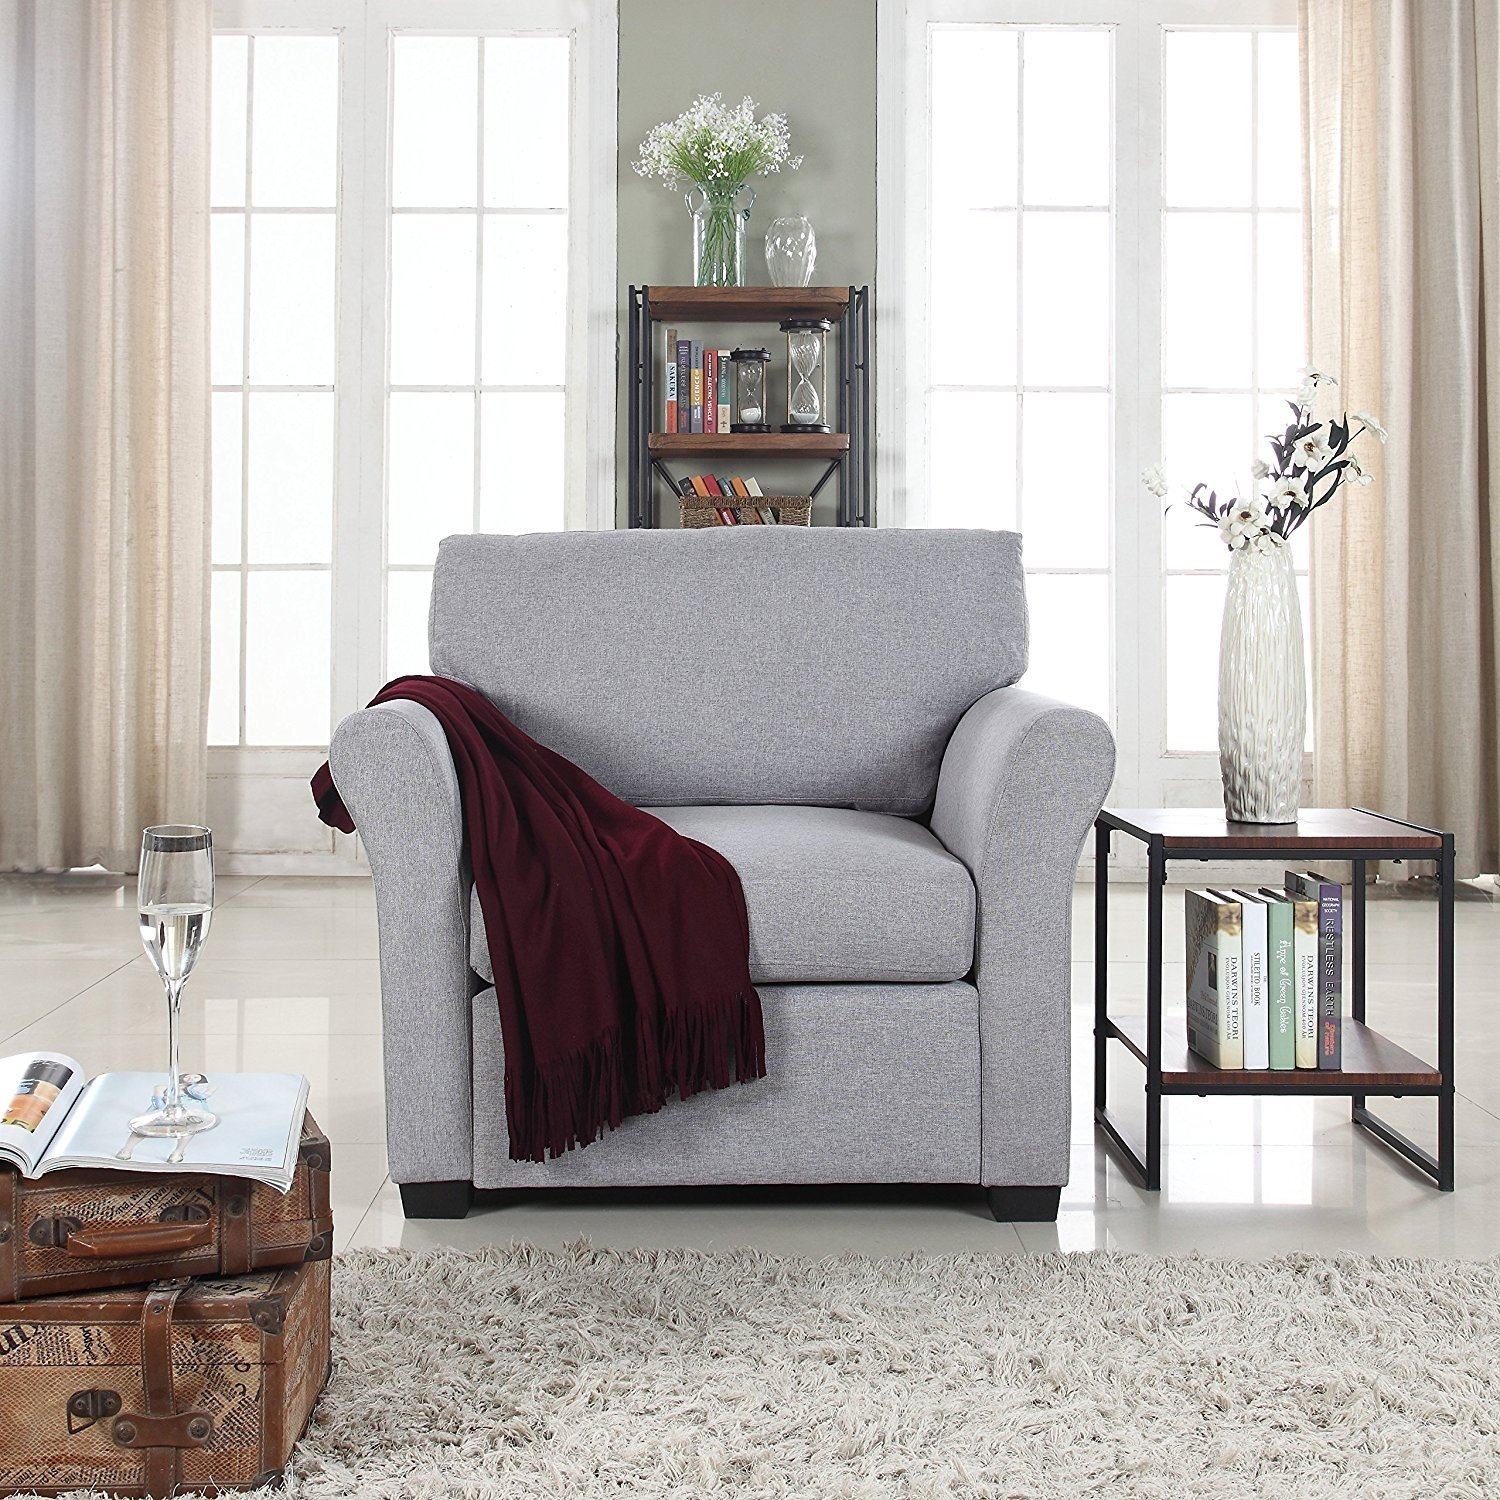 Details about Classic and Traditional Linen Fabric Accent Chair - Living  Room Armchair...